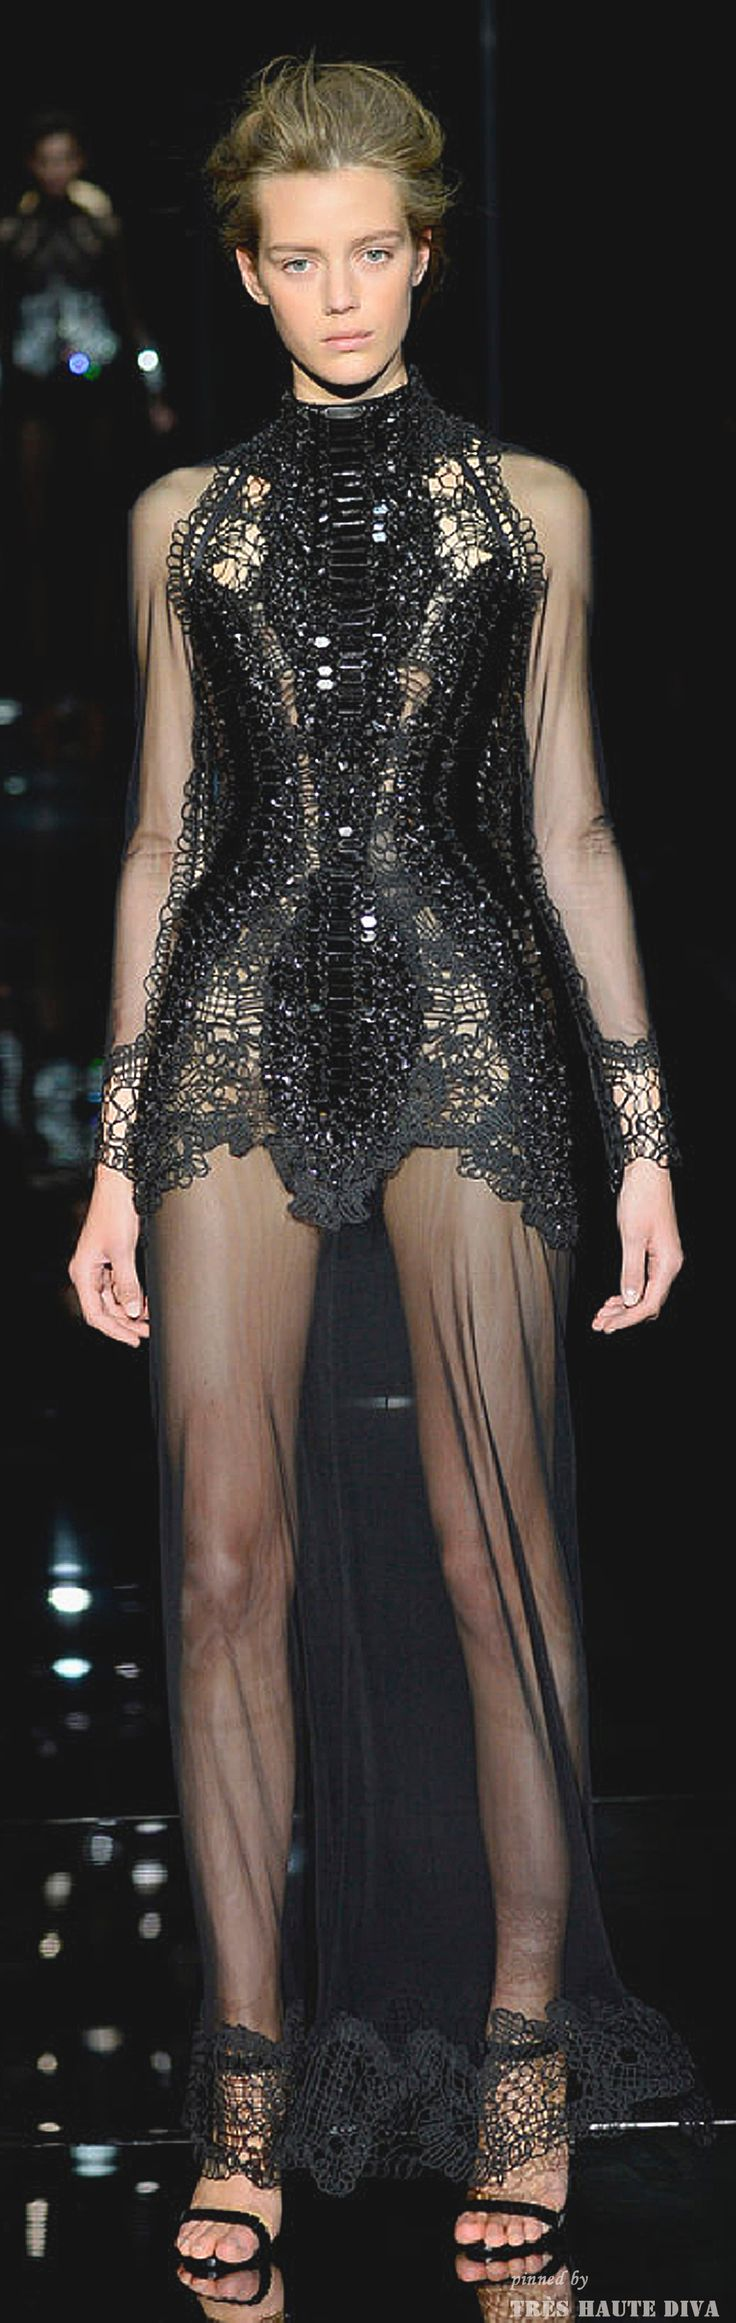 #London FW #TomFord Spring/Summer 2014 RTW www.nytimes.com/...